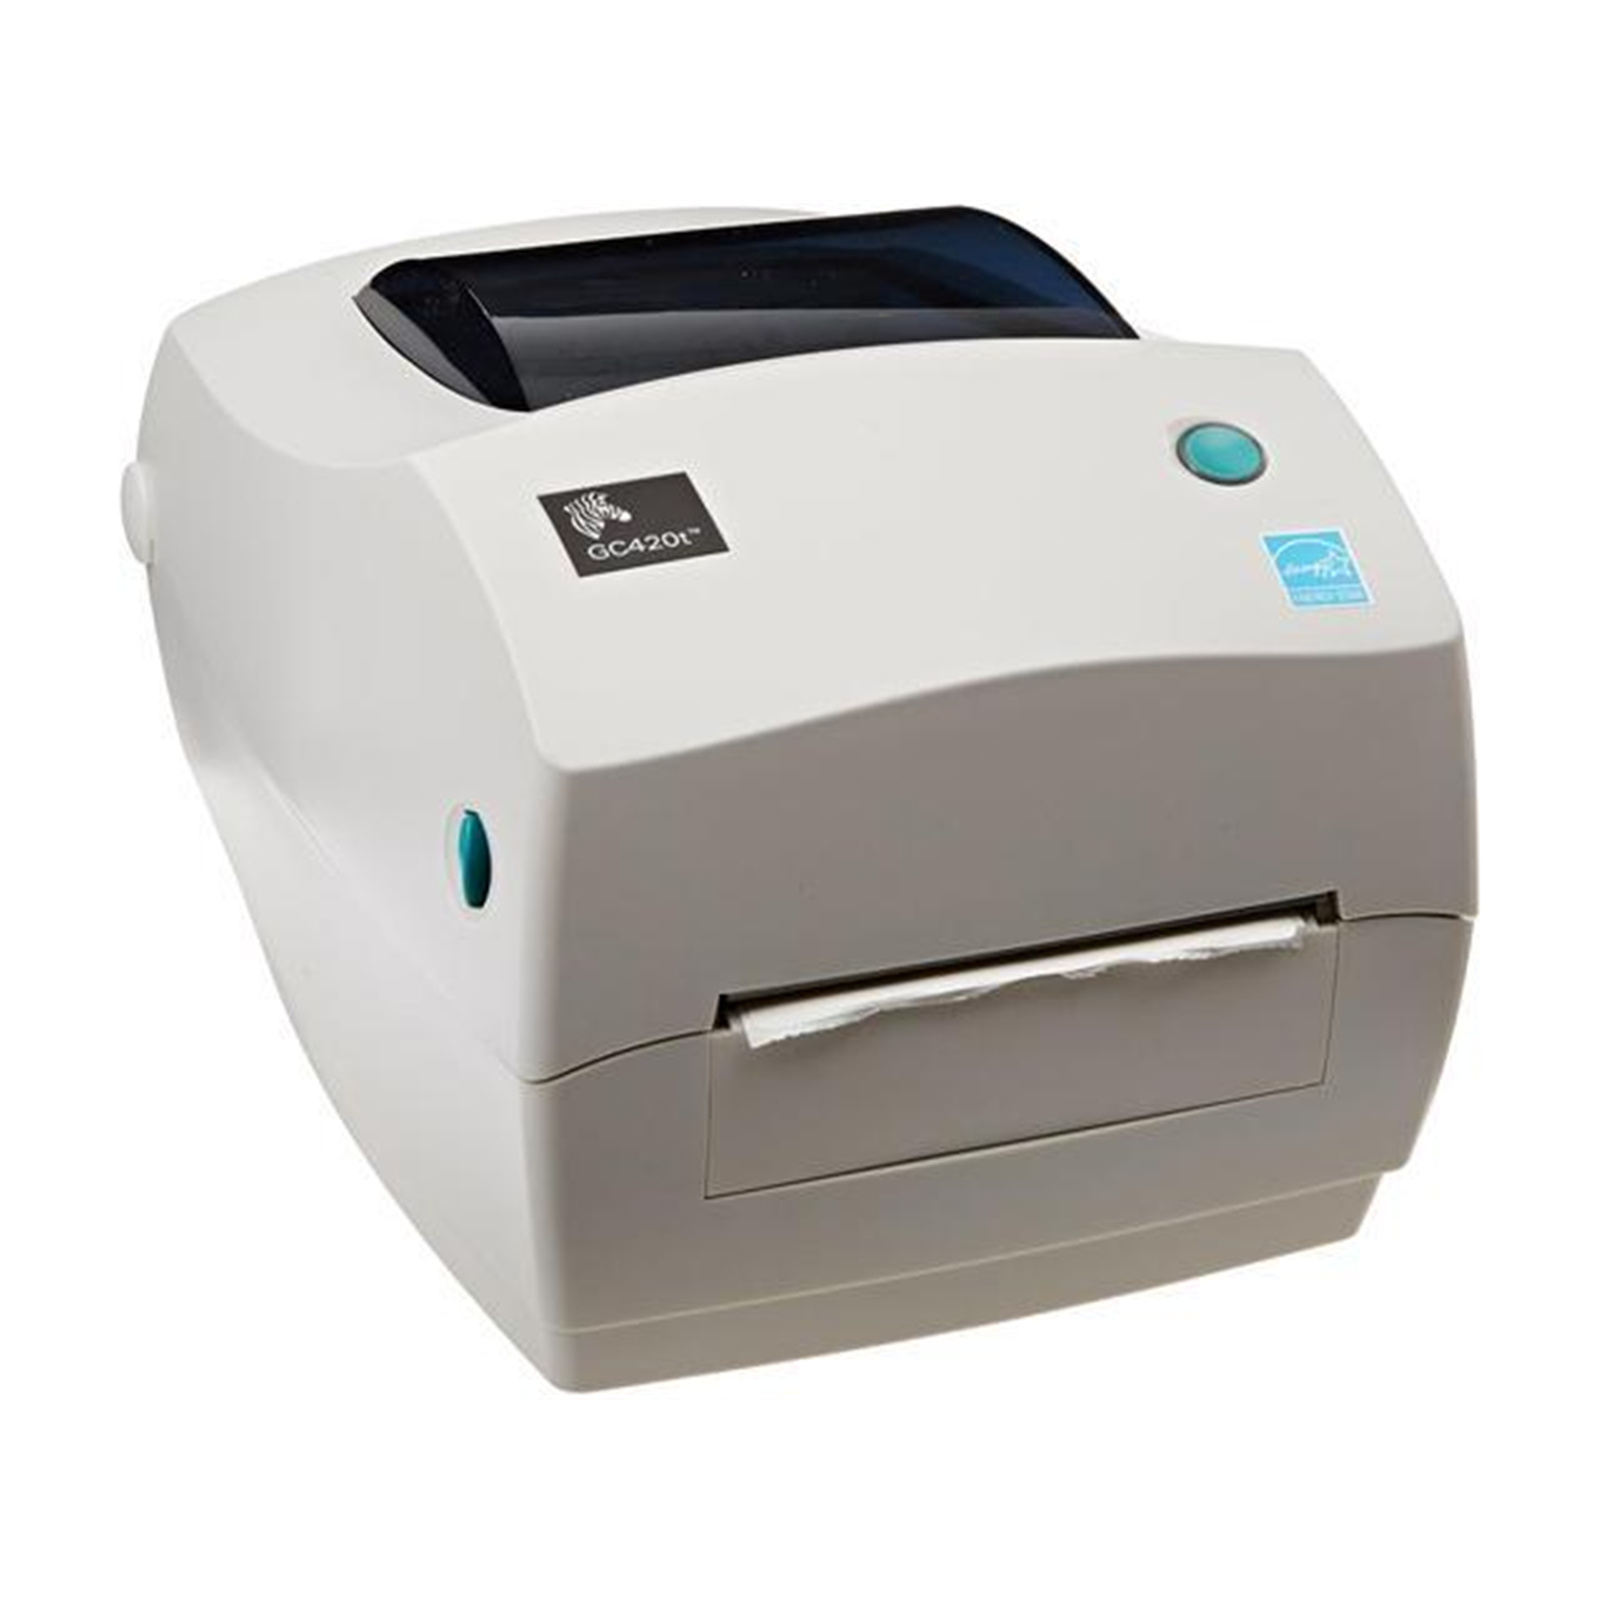 innovative design ac028 09ccd Zebra GC420t Direct Thermal Thermal Transfer Printer PAR SER USB Monochrome  - Desktop - Label Print - 101.60 mm s Mono - 203 dpi